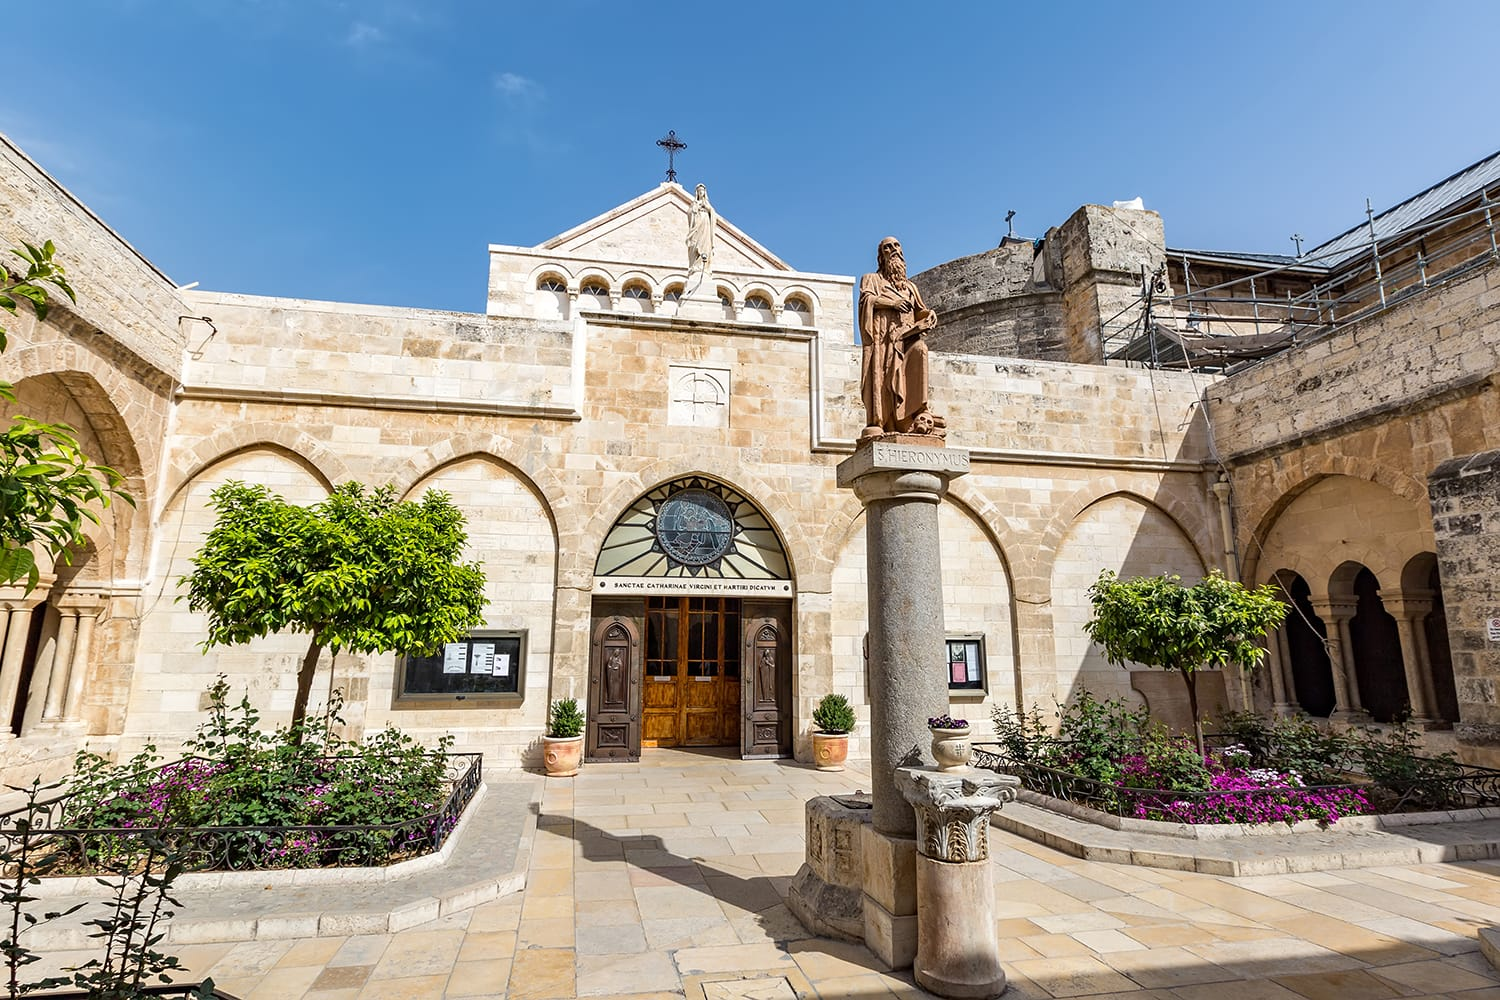 The statue to the St. Jerome located in the middle of the inner courtyard of the Church of the Nativity in Bethlehem.